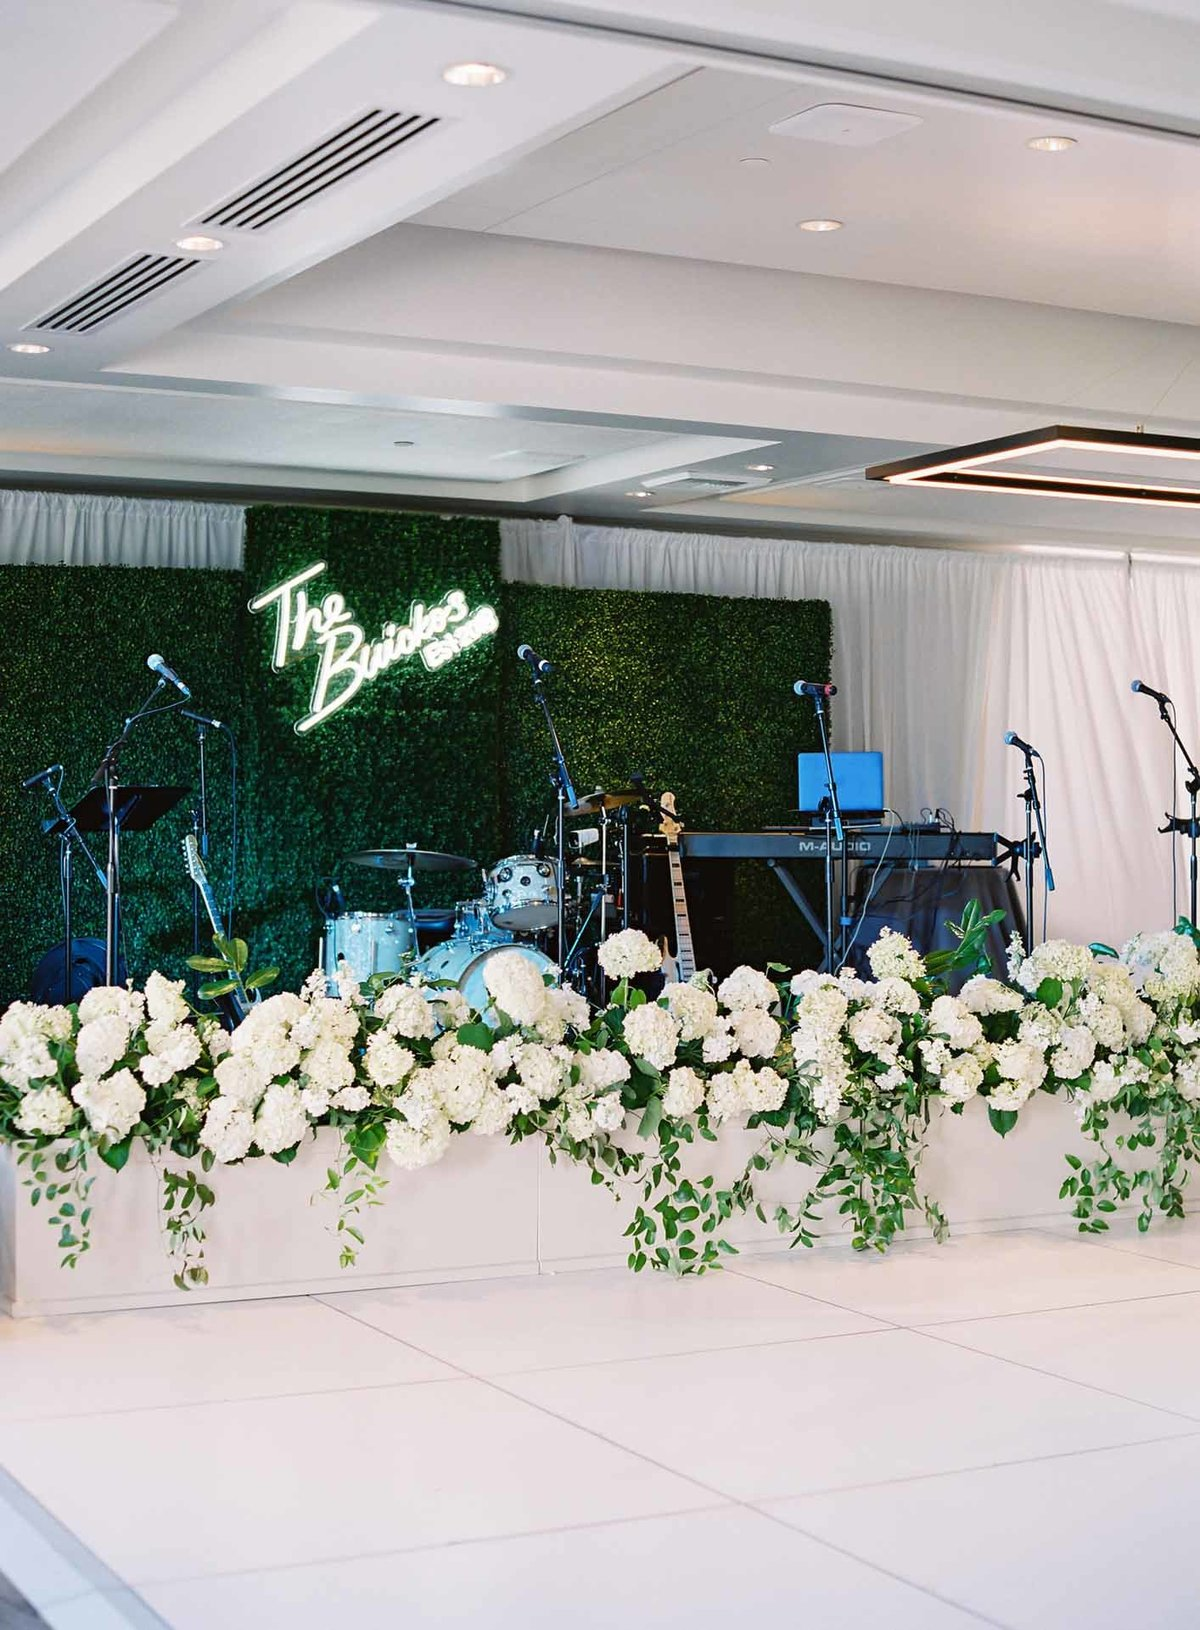 This wedding reception band stage at Overlake Golf and Country Club has serious WOW factor!